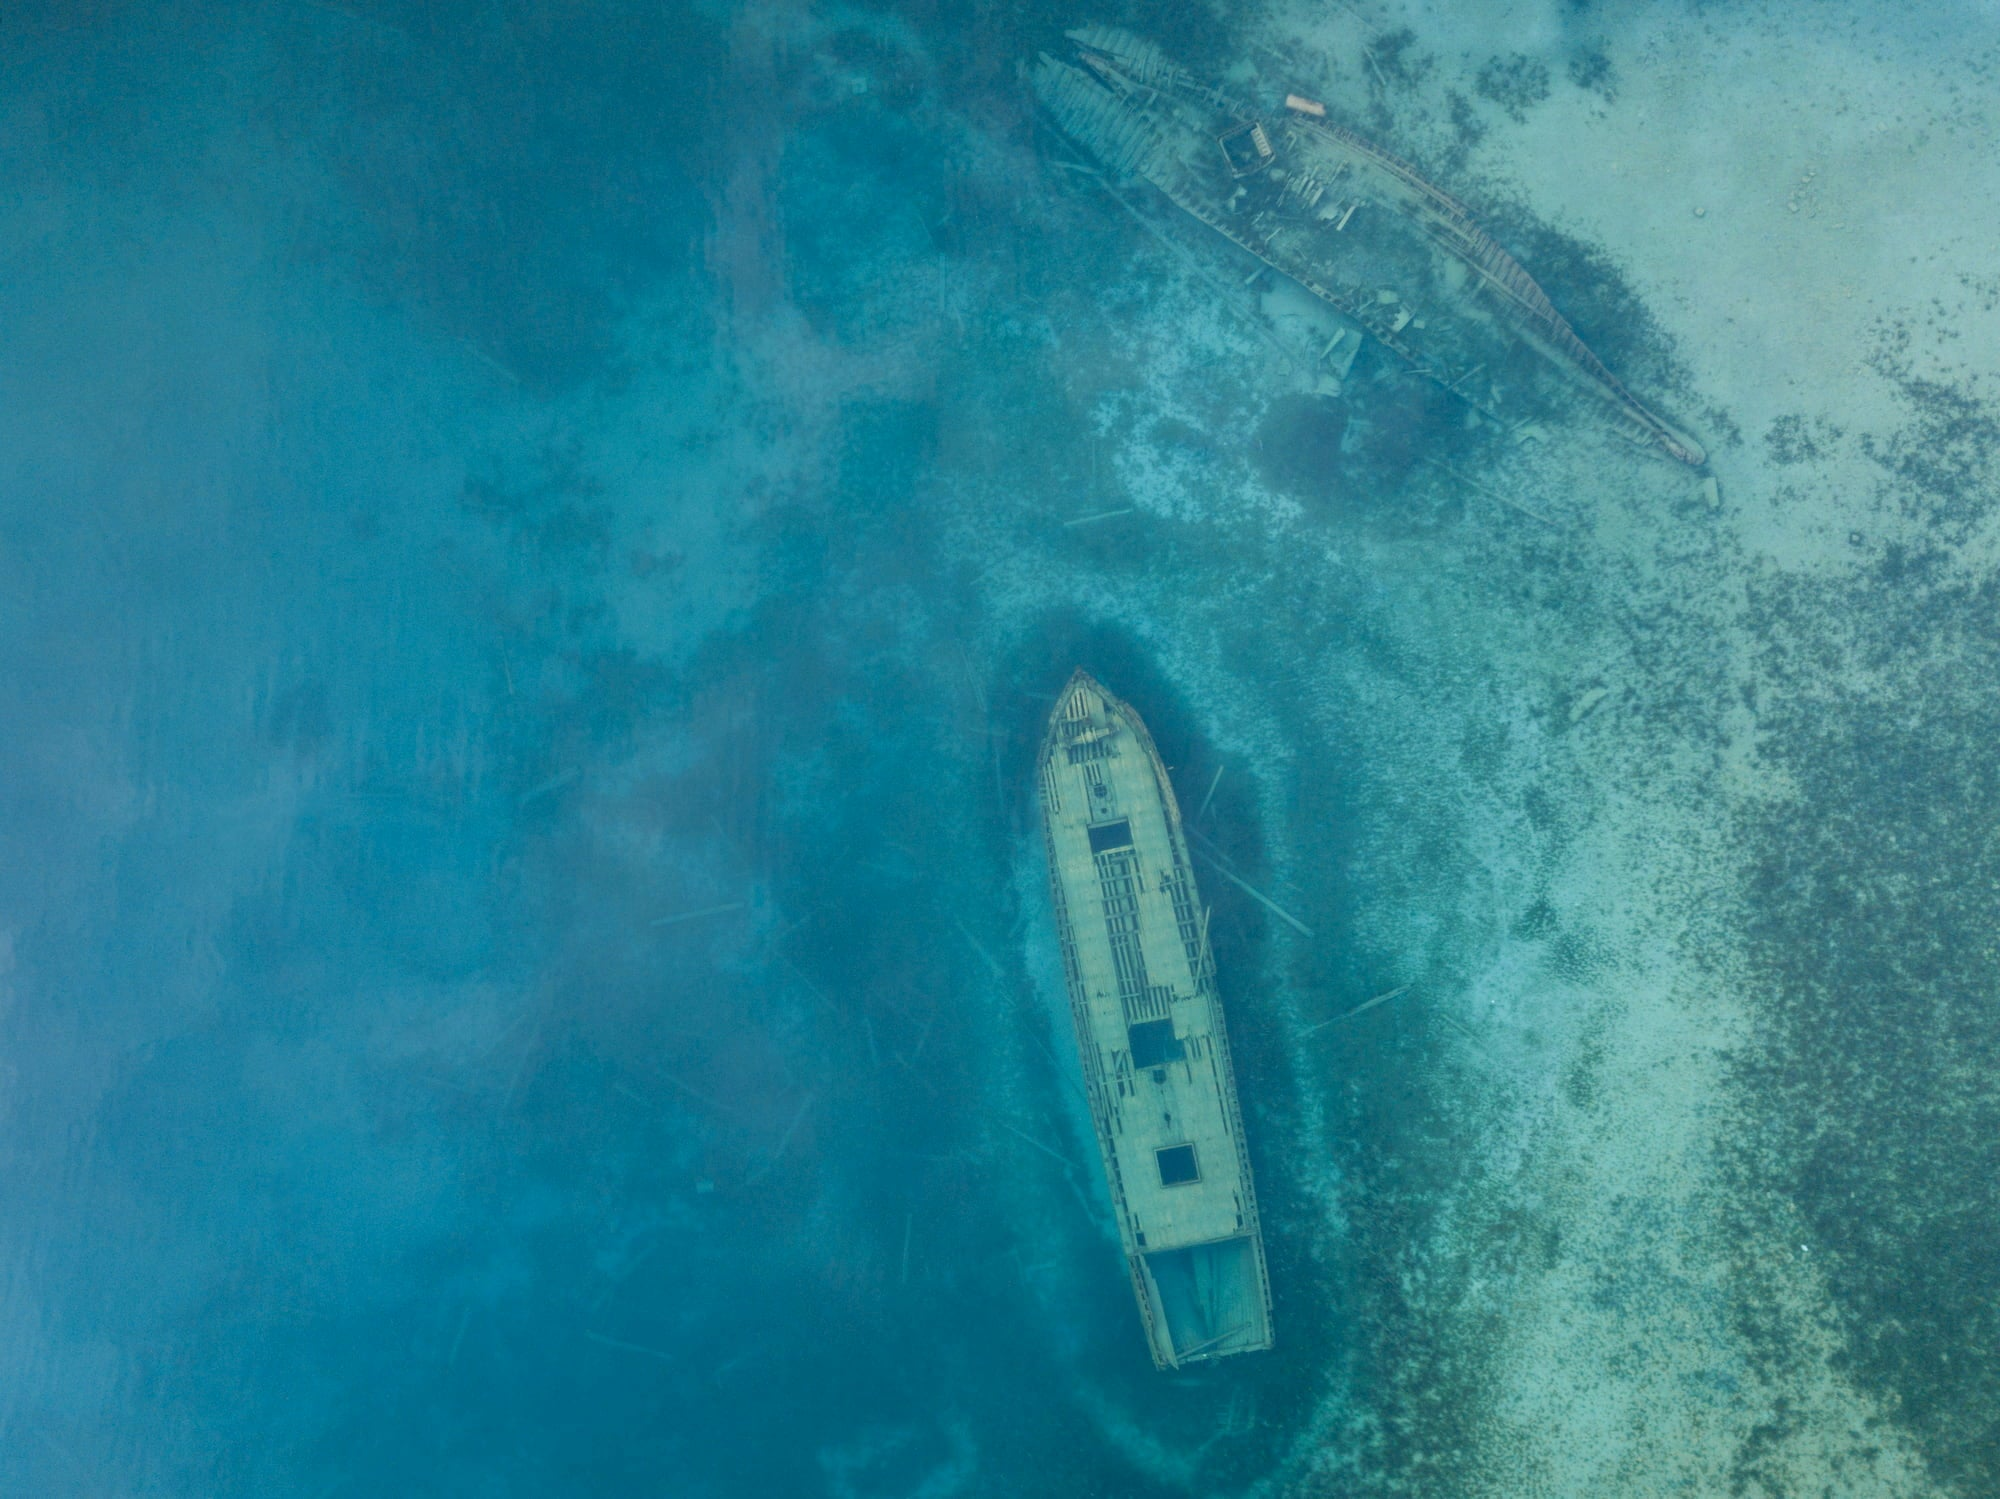 Aerial image of schooner shipwrecks in the great lakes.